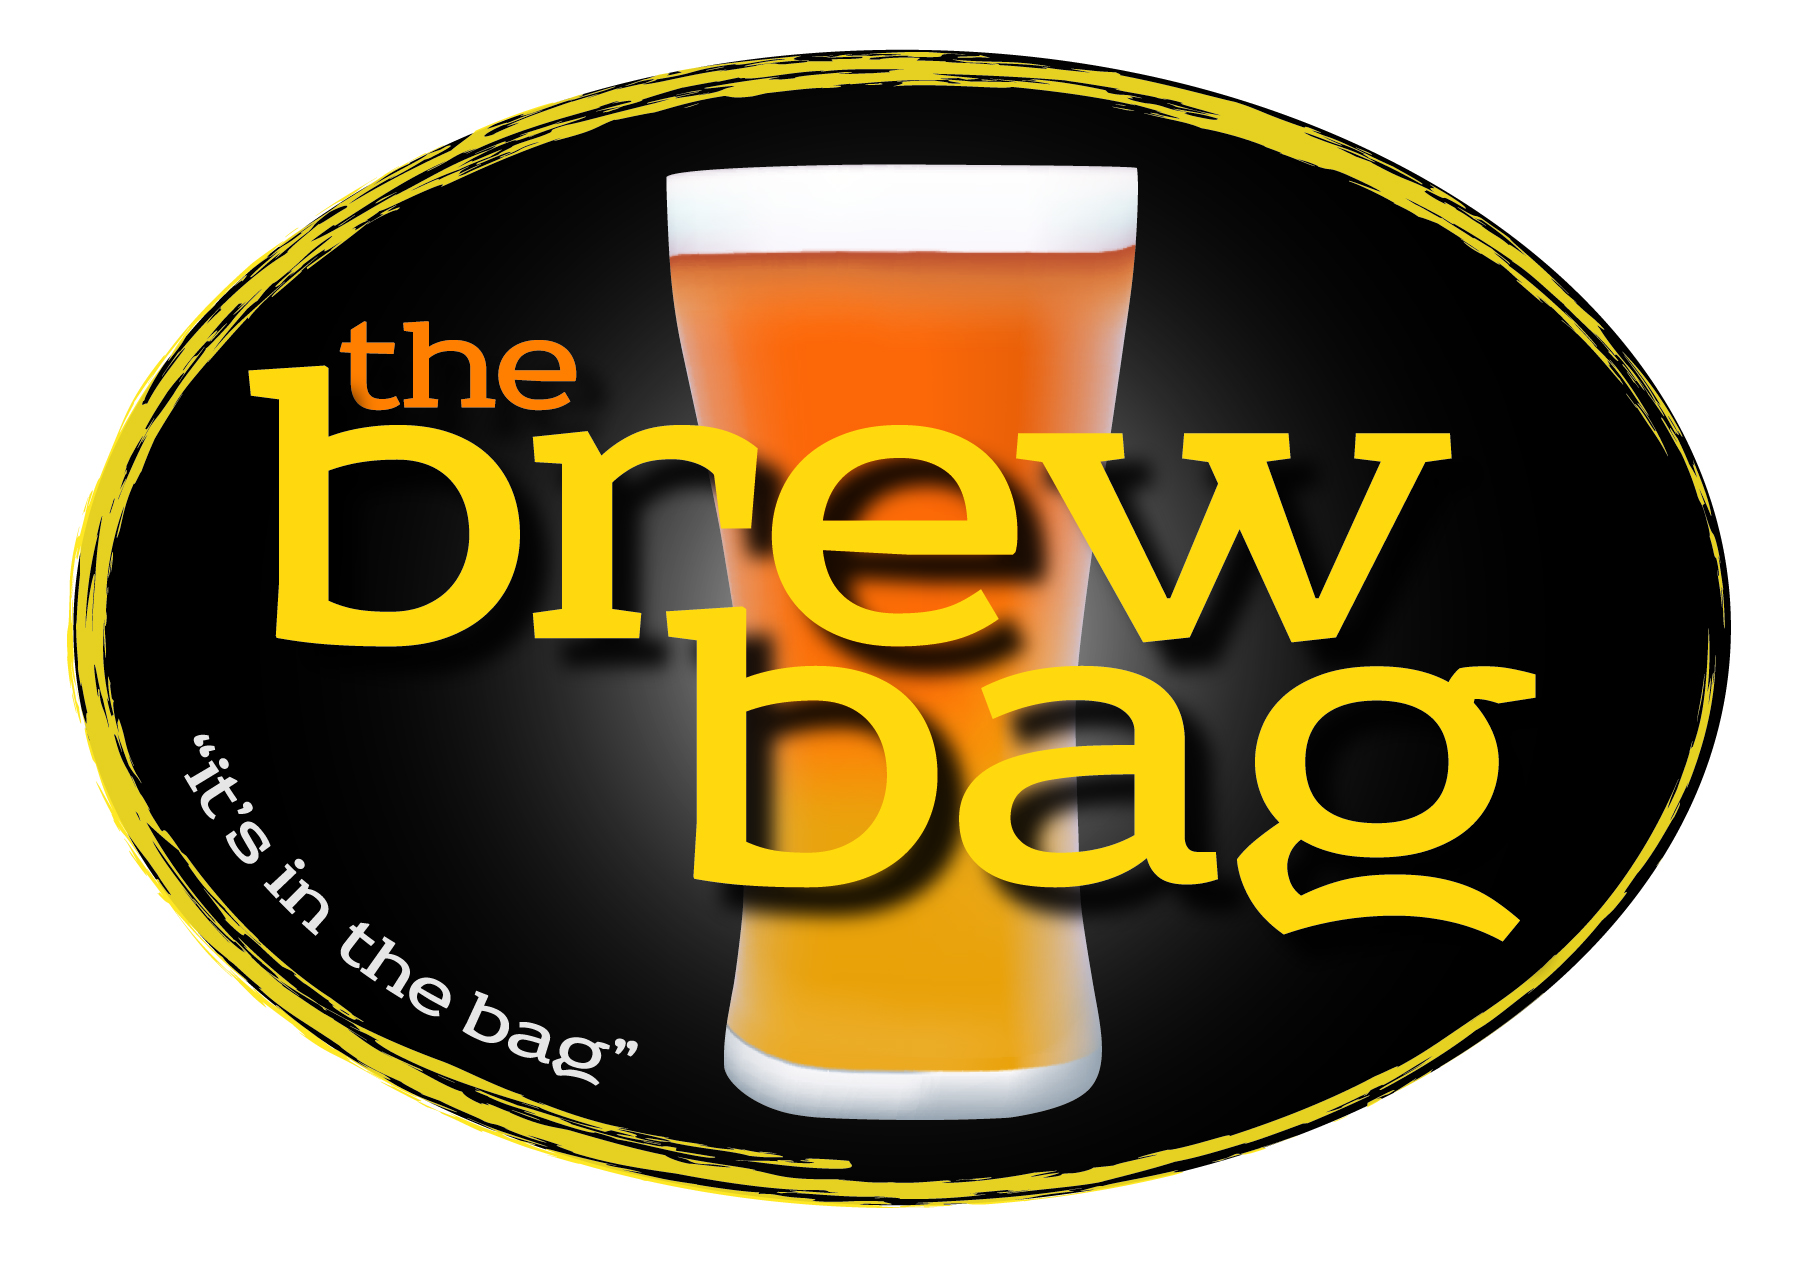 For all of you Brew-in-a-Bag types - and I'm happy to report that I'm one of you, on occasion!